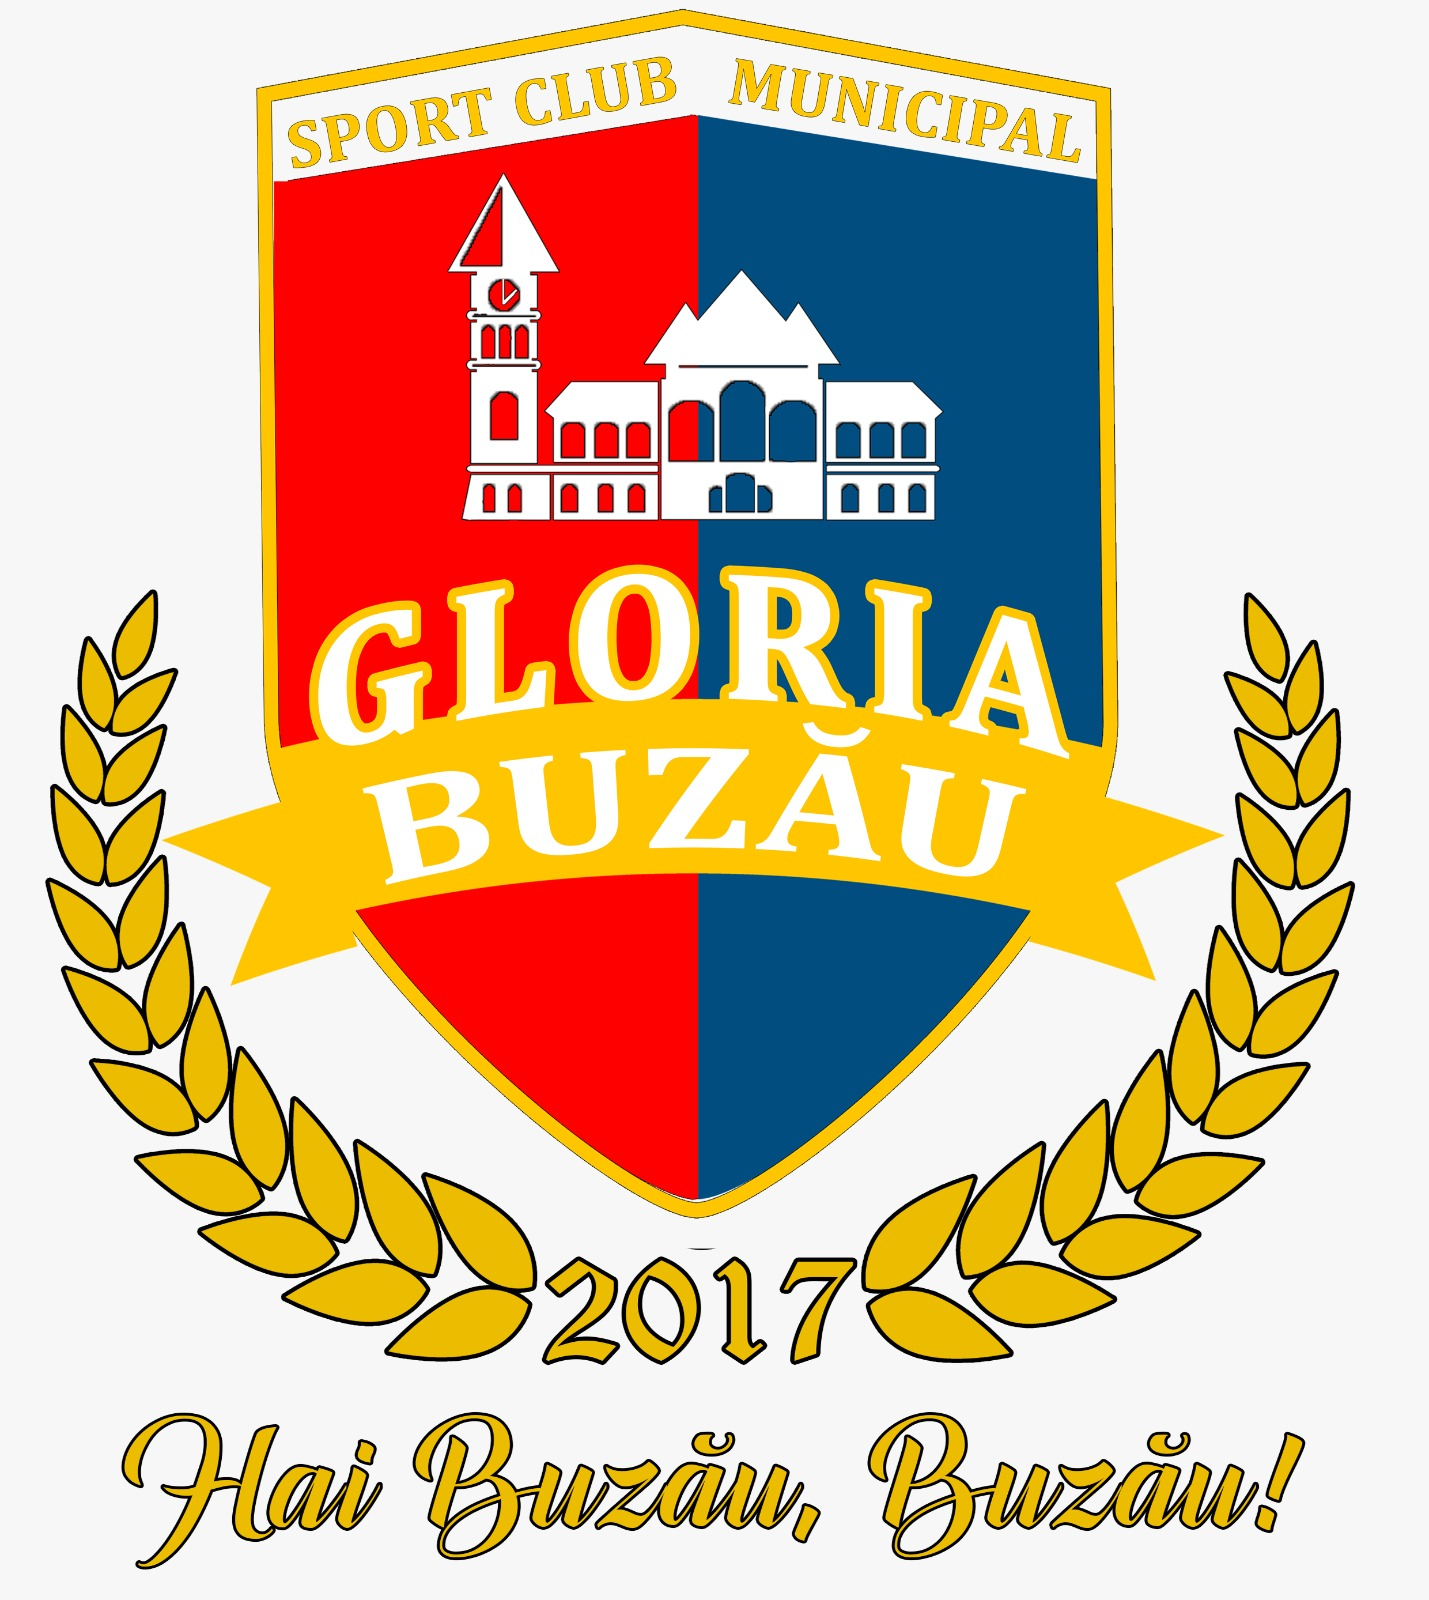 SPORT CLUB MUNICIPAL GLORIA BUZAU